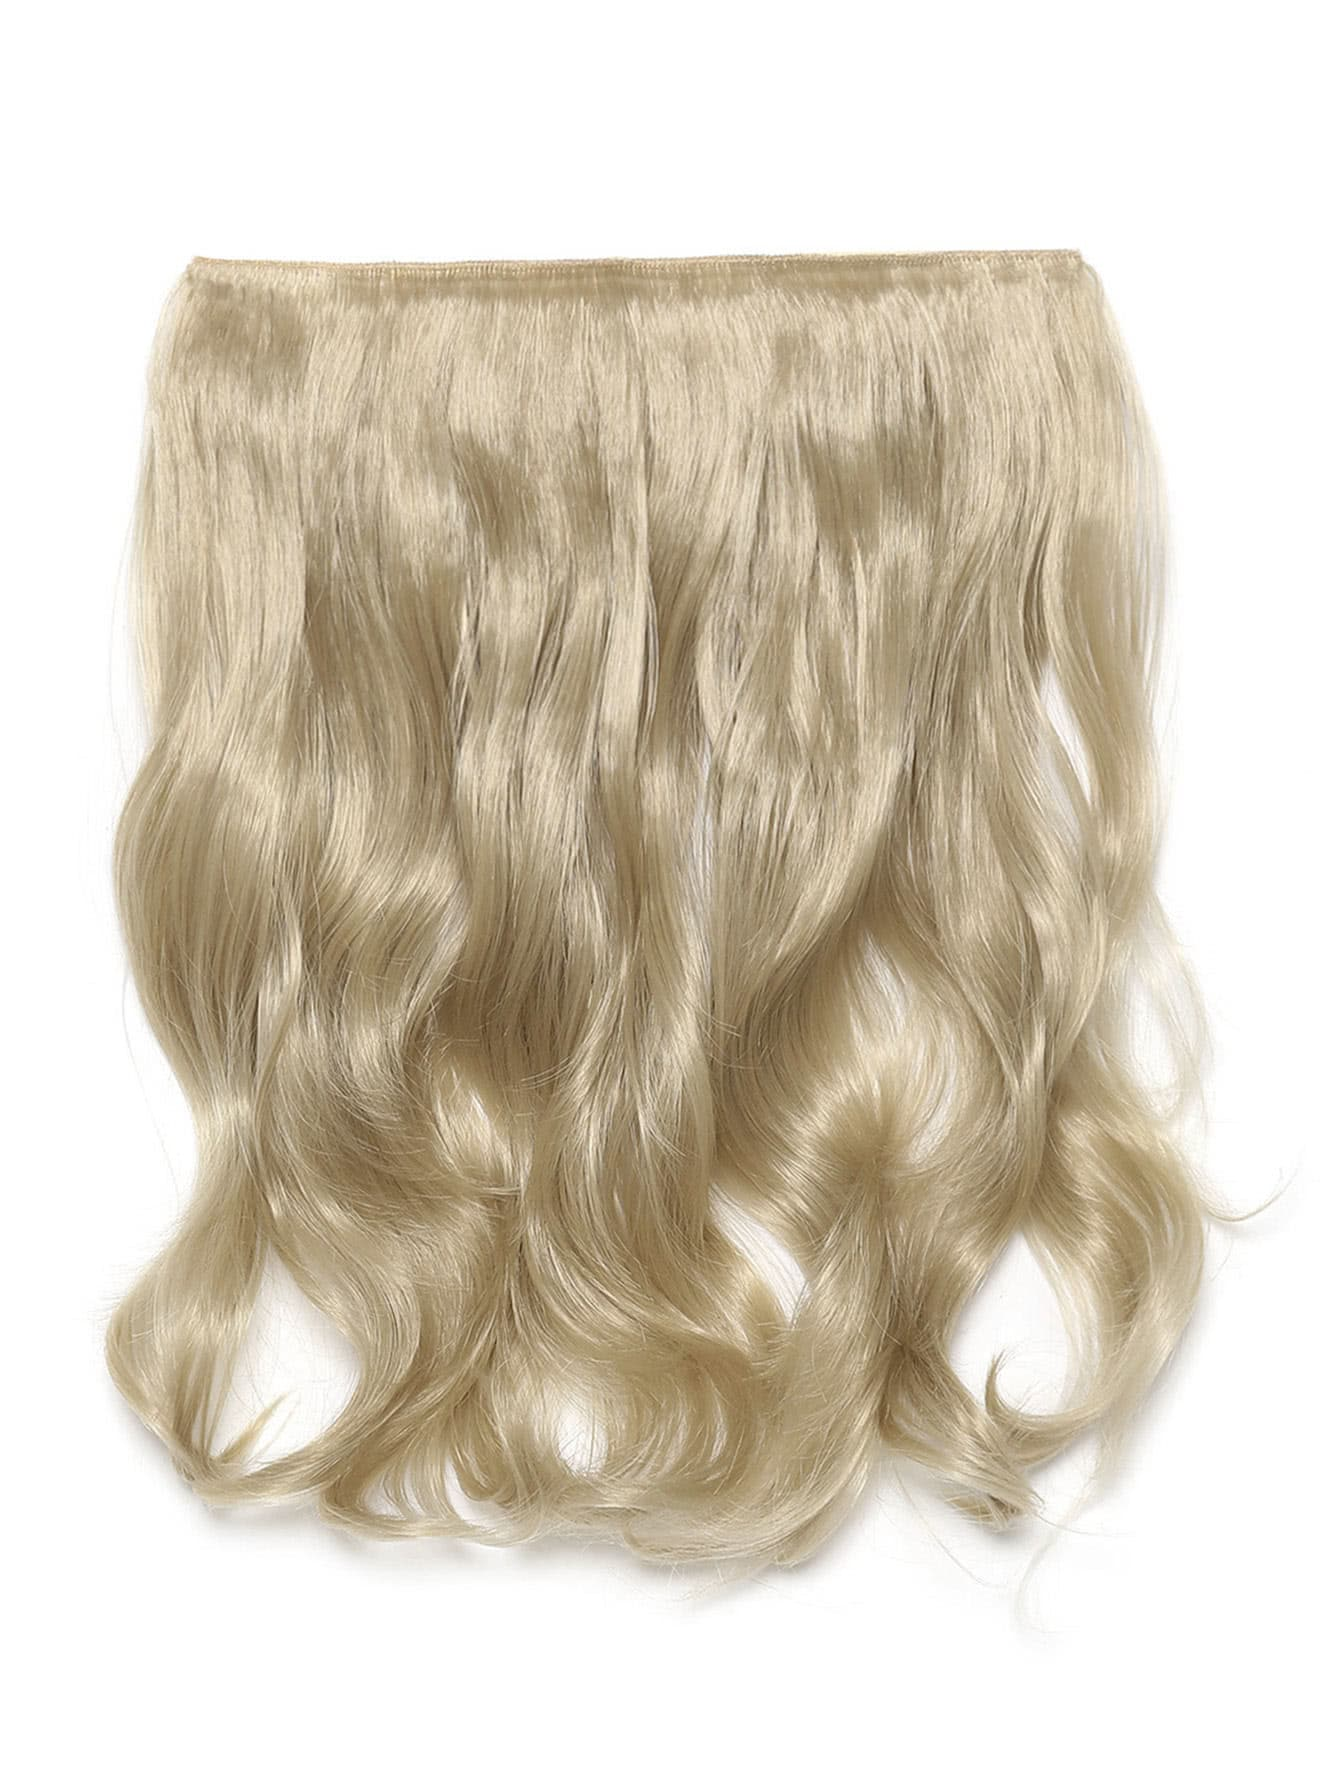 Light Golden Blonde Clip In Soft Wave Hair Extension light blonde clip in soft wave hair extension 5pcs